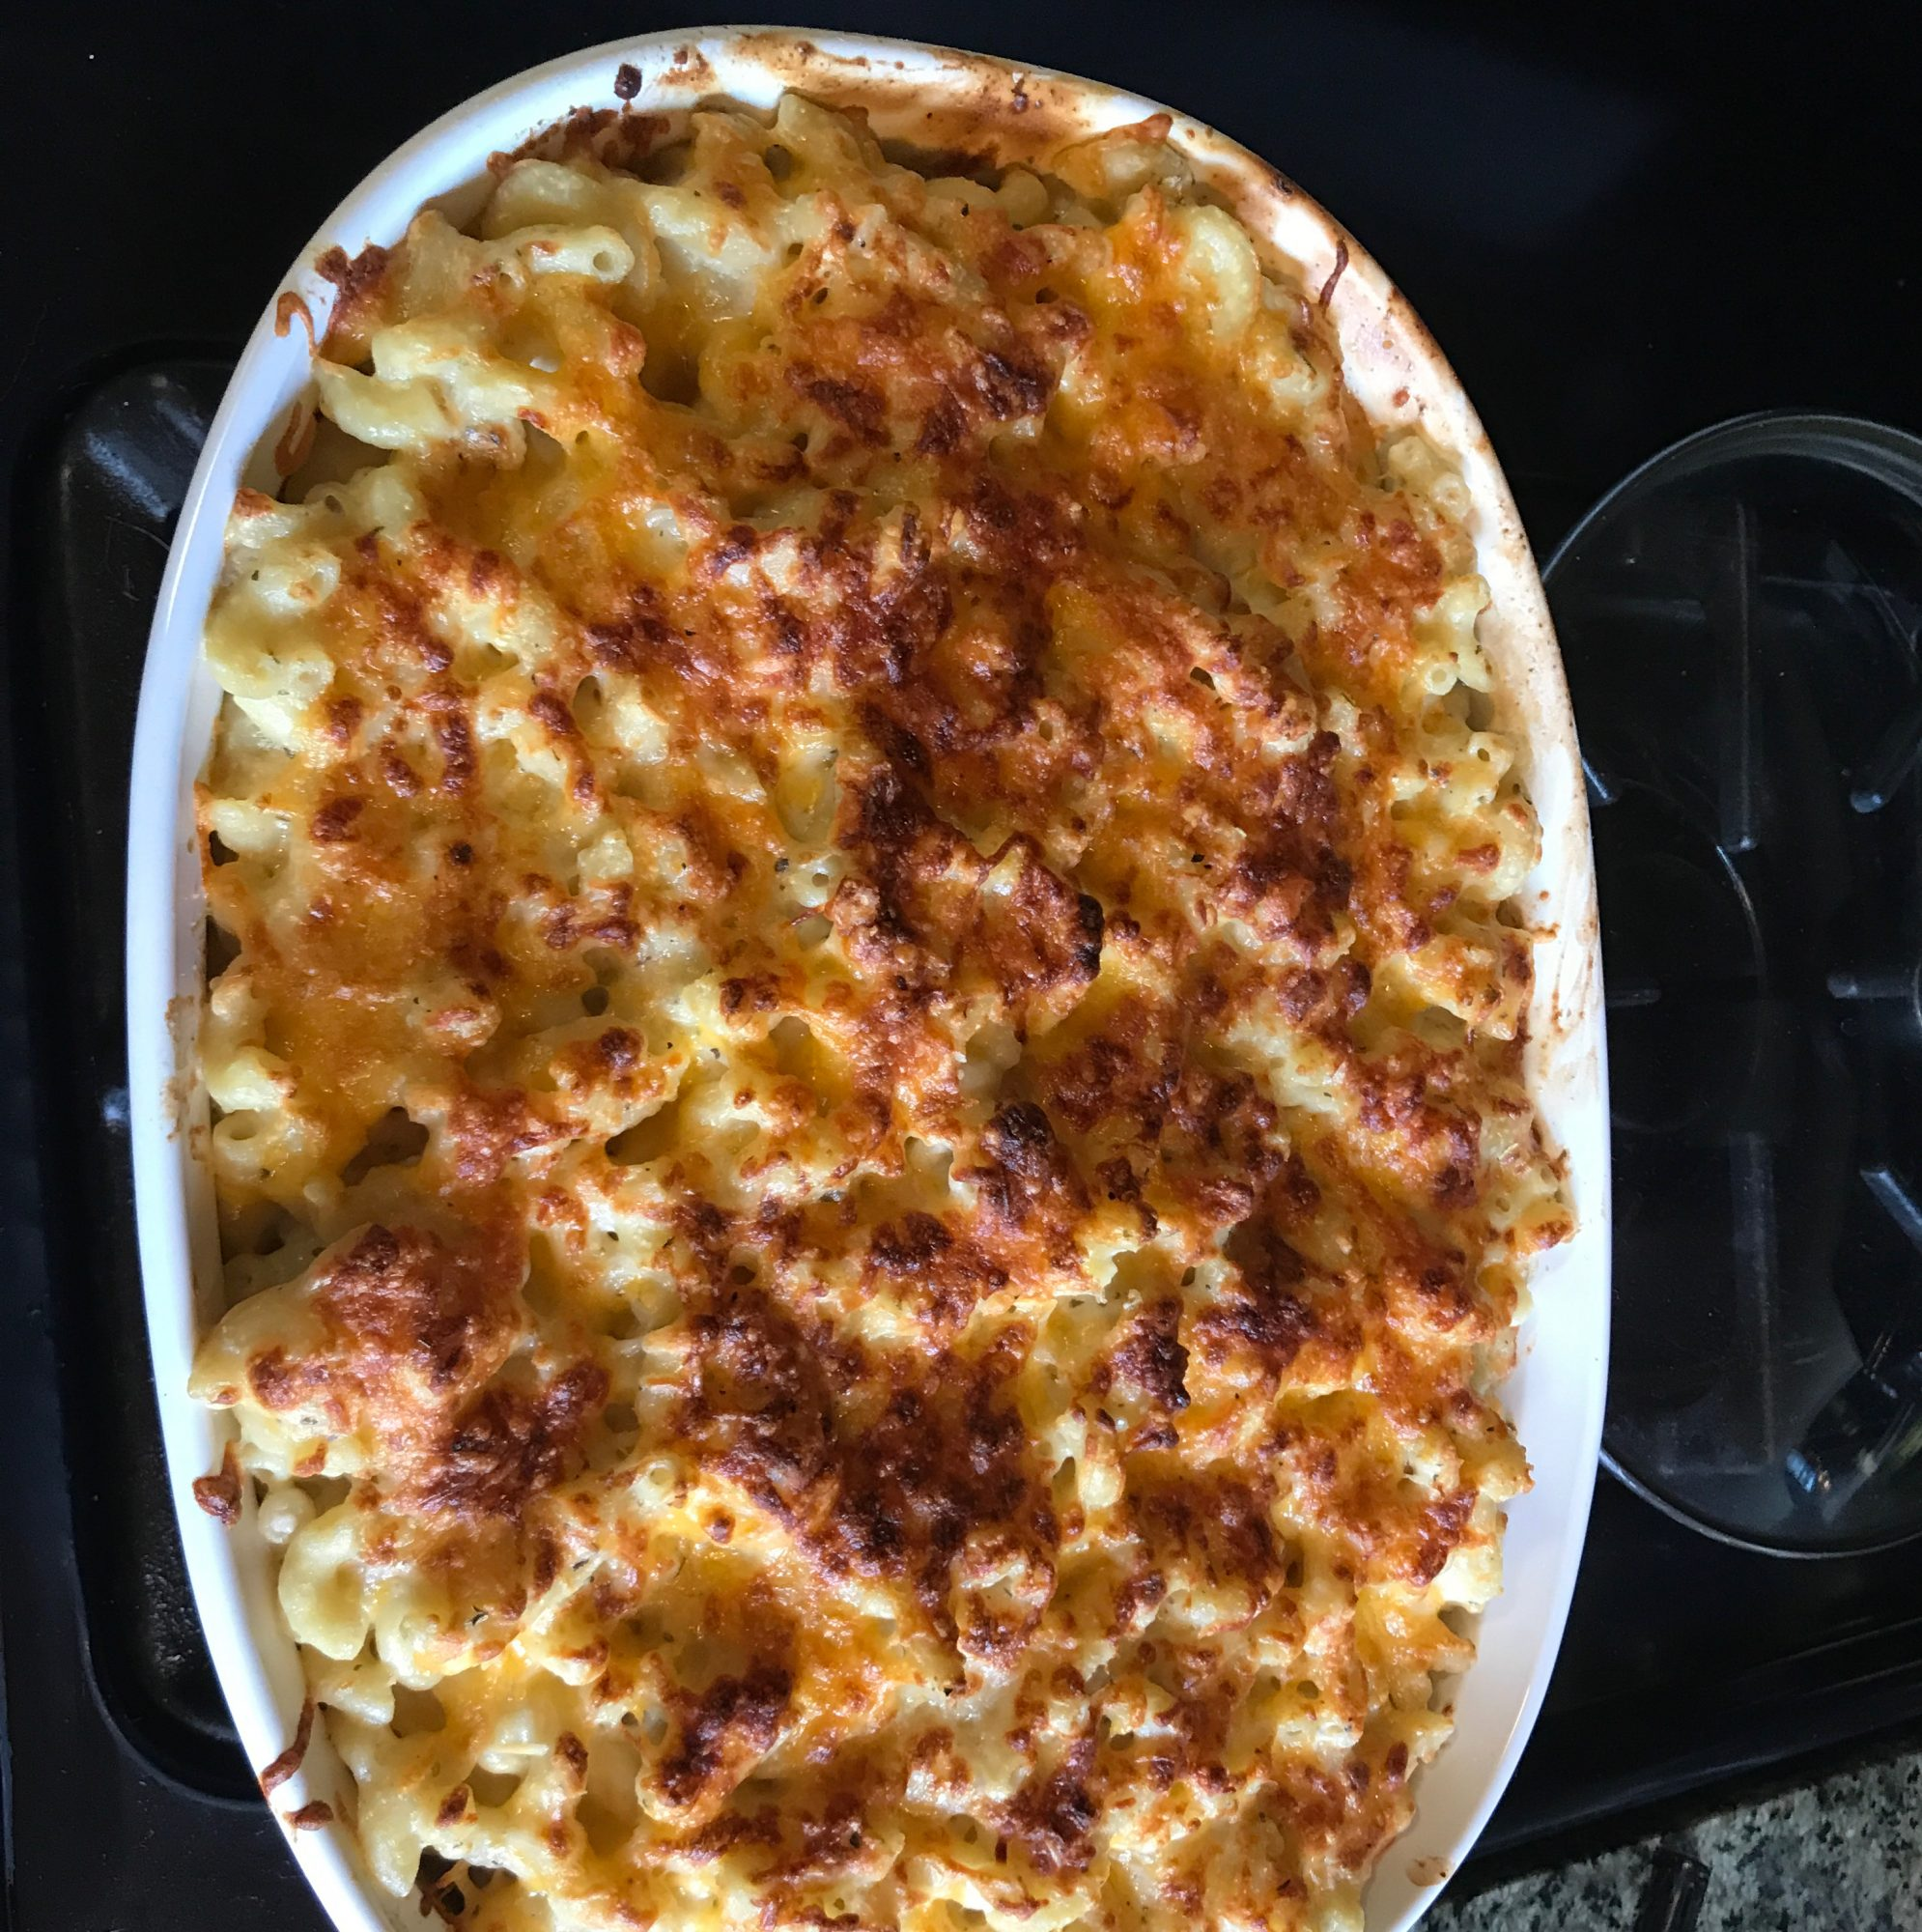 Wisconsin Five-Cheese Bake in a white dish